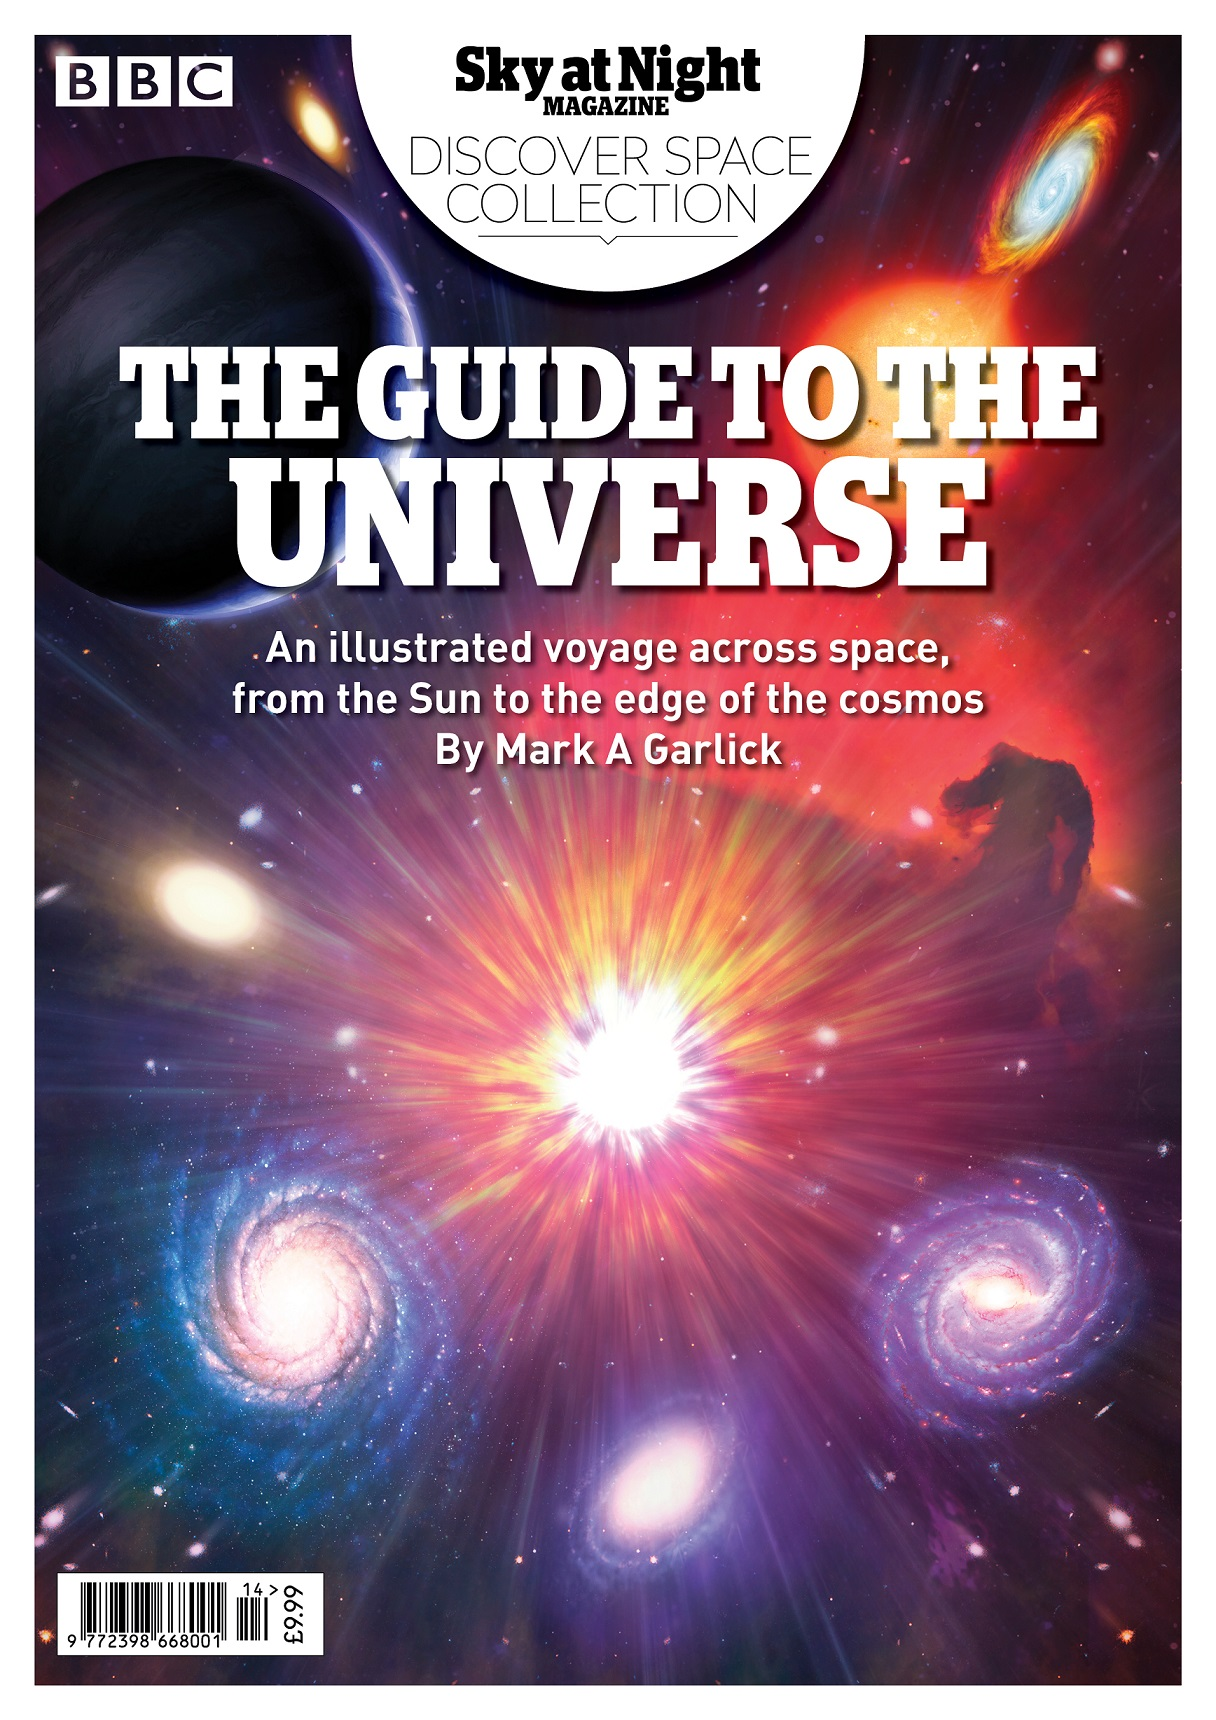 The Guide to the Universe